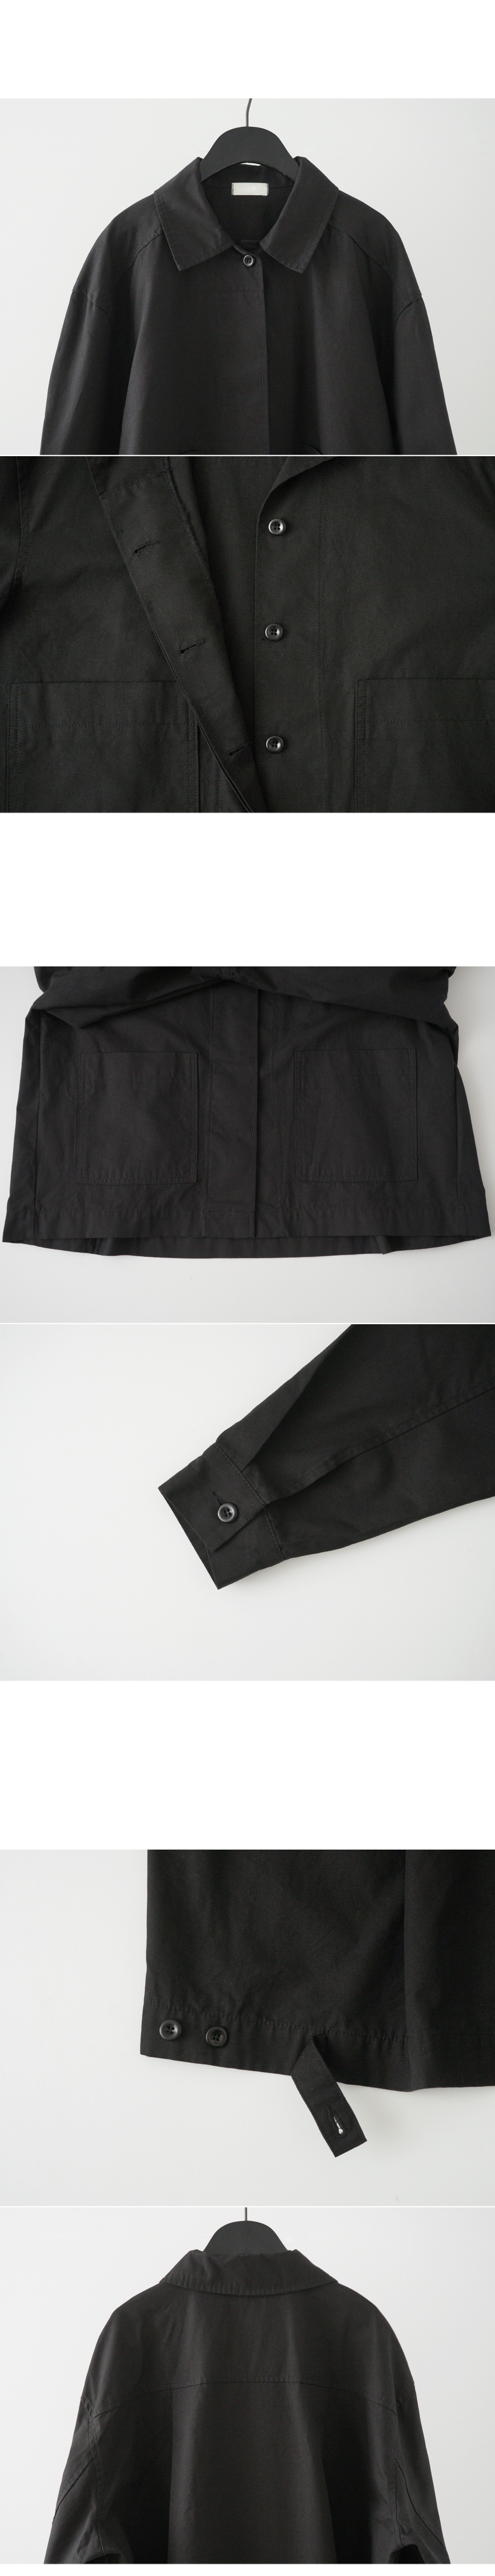 A-line over fit jacket